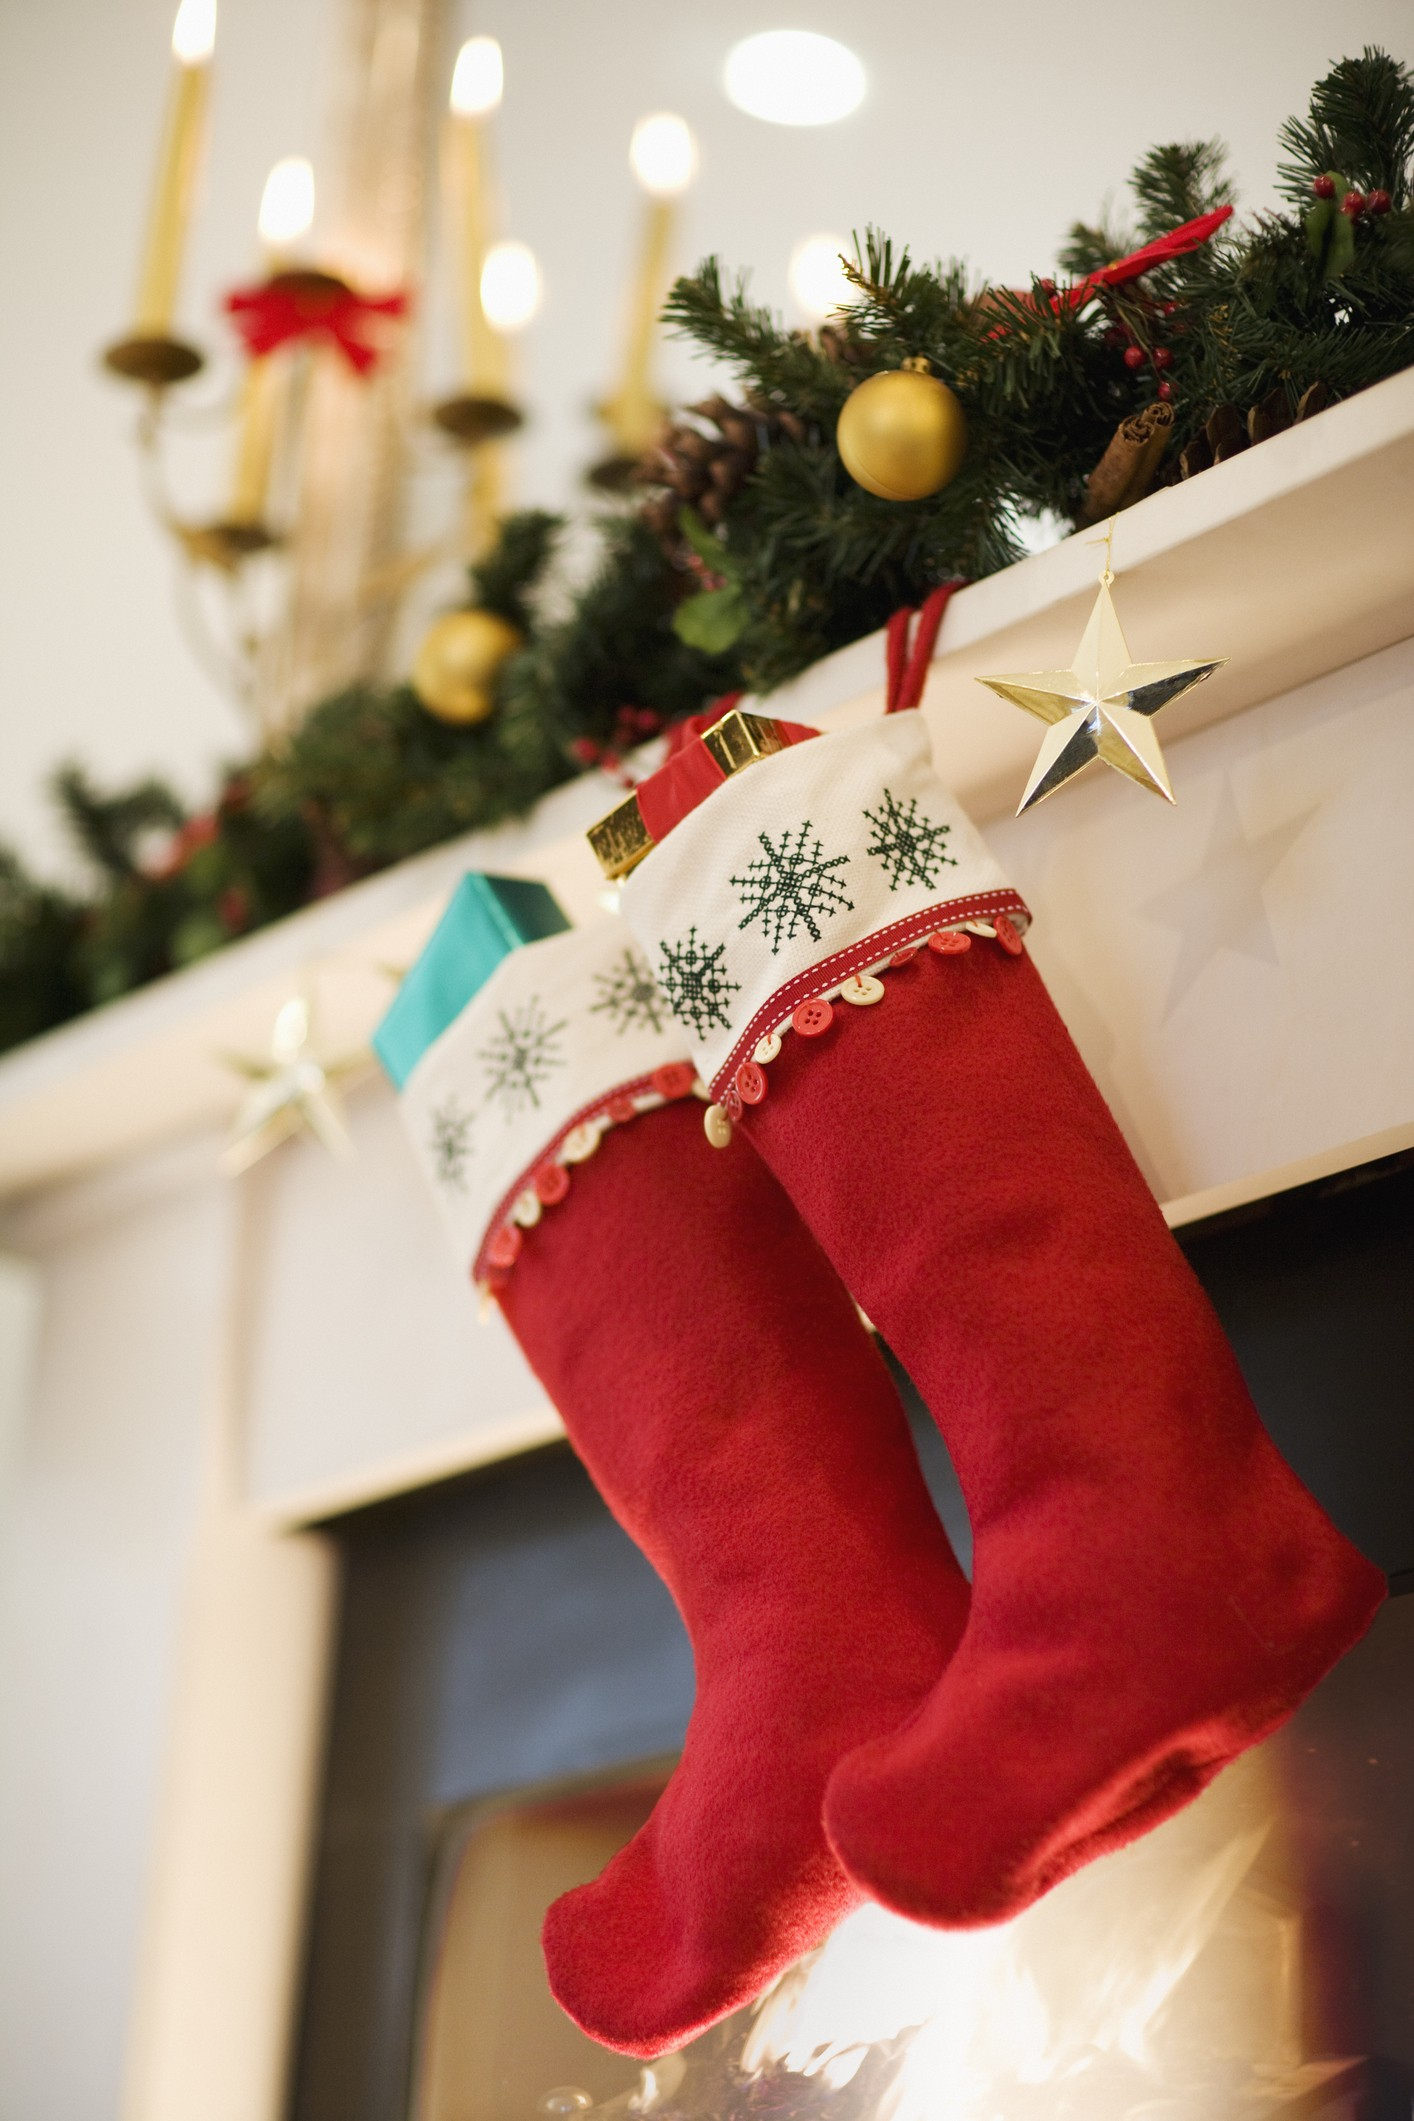 Christmas stockings hanging on fireplace mantel